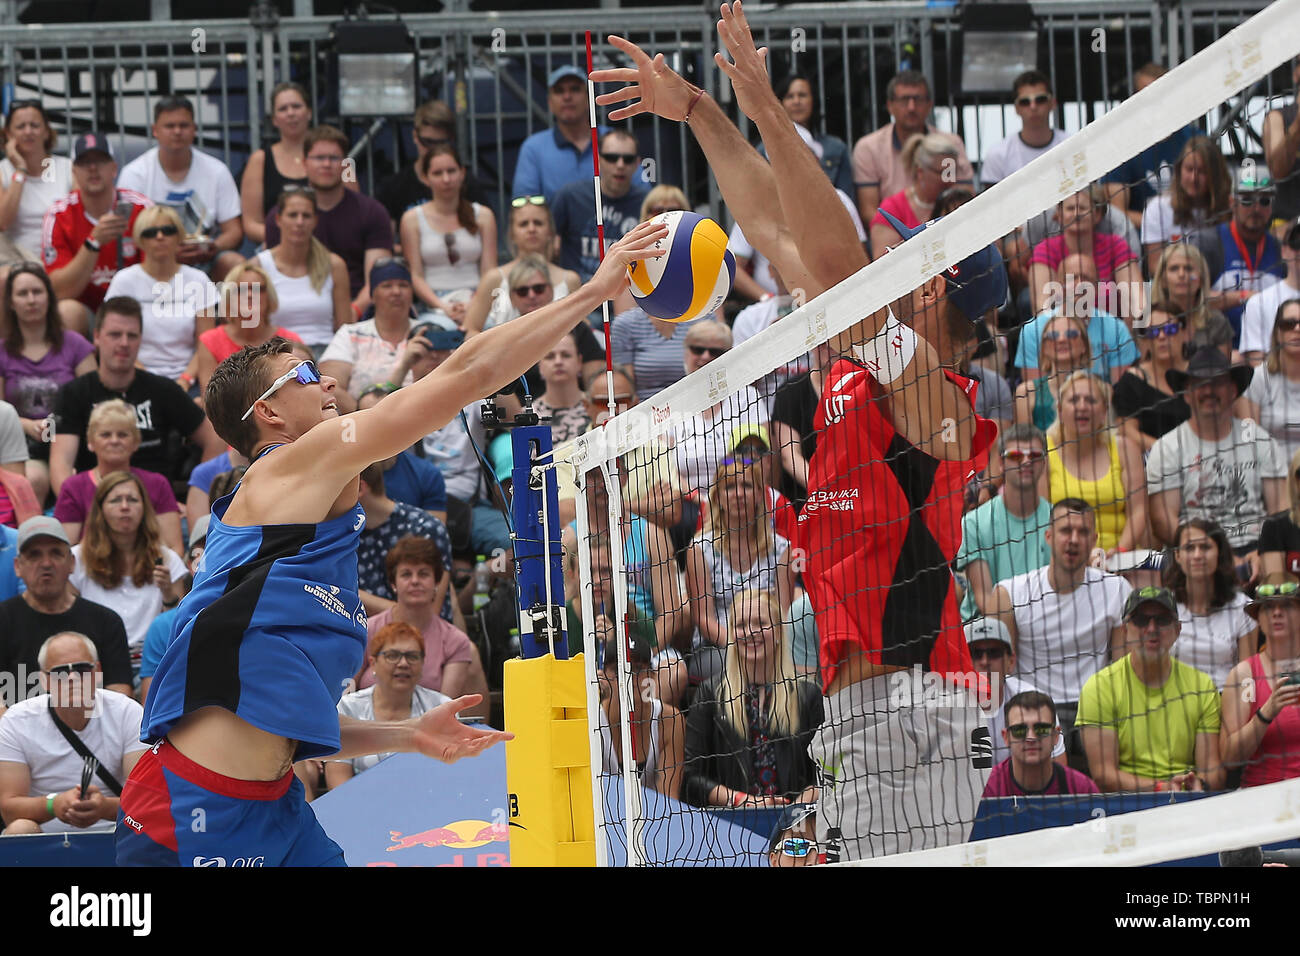 Ostrava, Czech Republic. 01st June, 2019. L-R David Schweiner (Czech) and Martin Ermacora (Austria) in action during the four-star J&T Banka Ostrava Beach Open 2019, part of the FIVB Beach Volleyball World Tour, in Ostrava, Czech Republic, on July 1, 2019. Credit: Petr Sznapka/CTK Photo/Alamy Live News Stock Photo